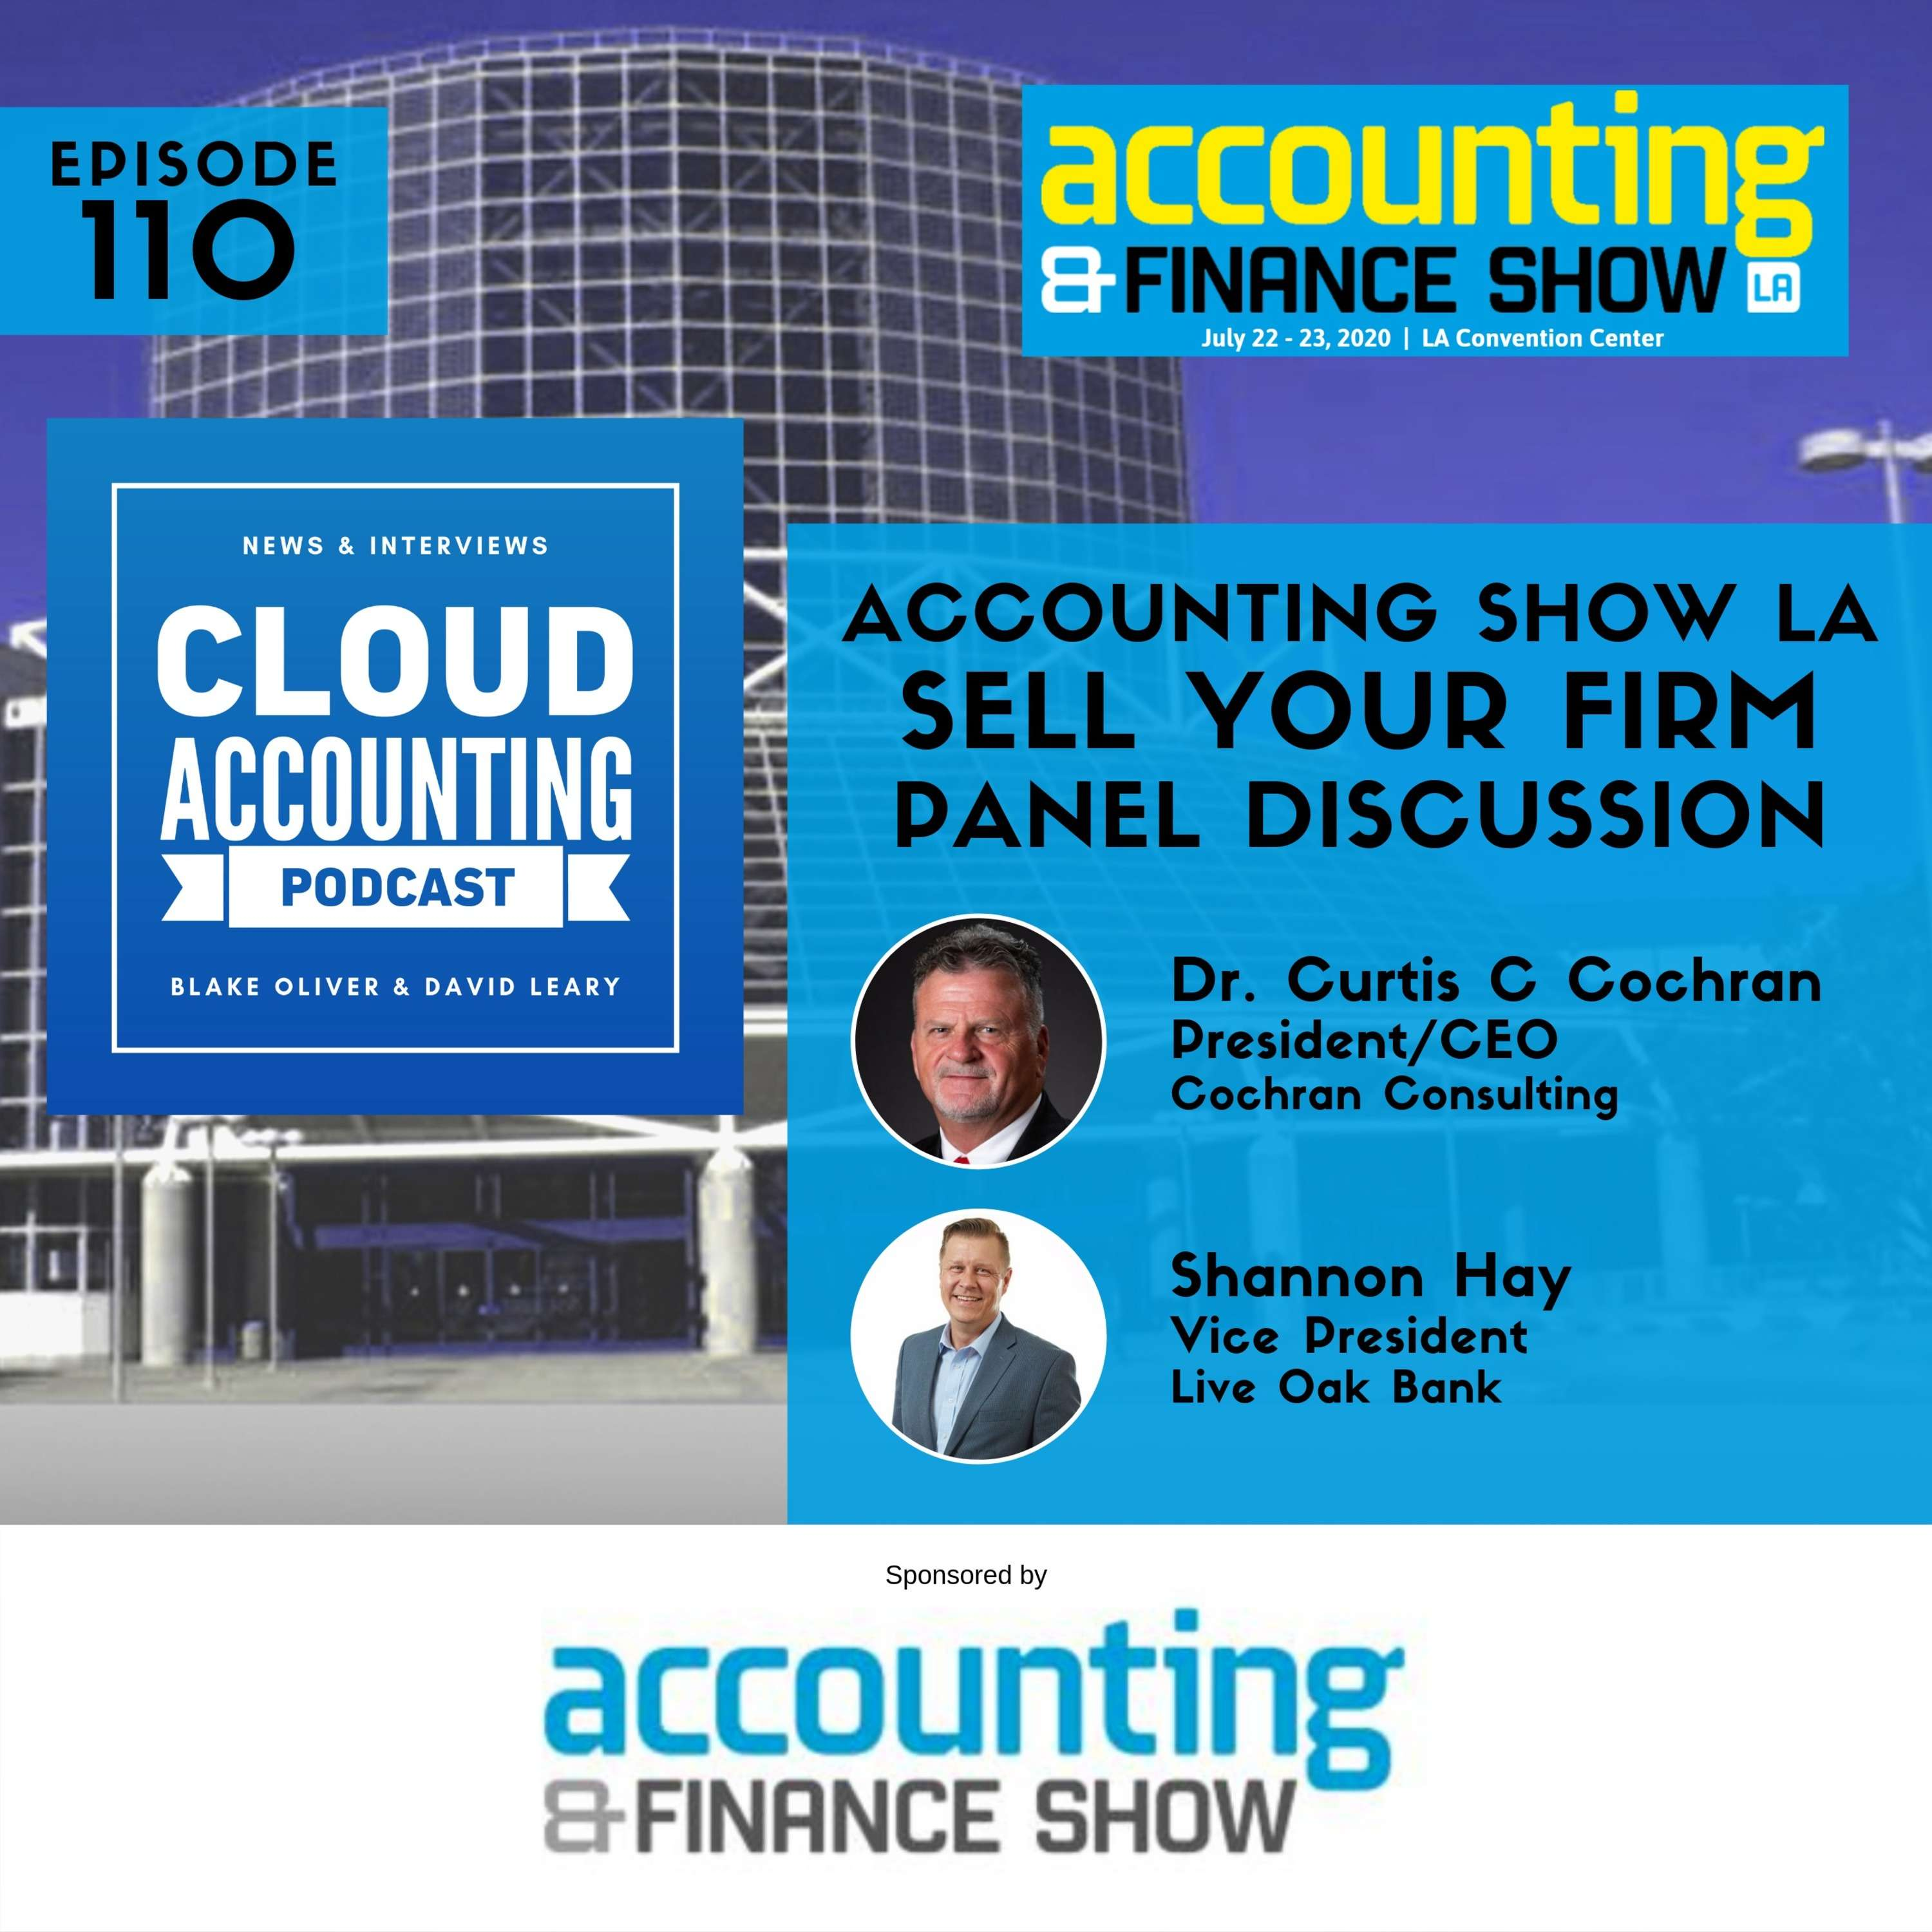 #AccountingShowLA: Things you need to know if you want to sell (or buy) an accounting firm!